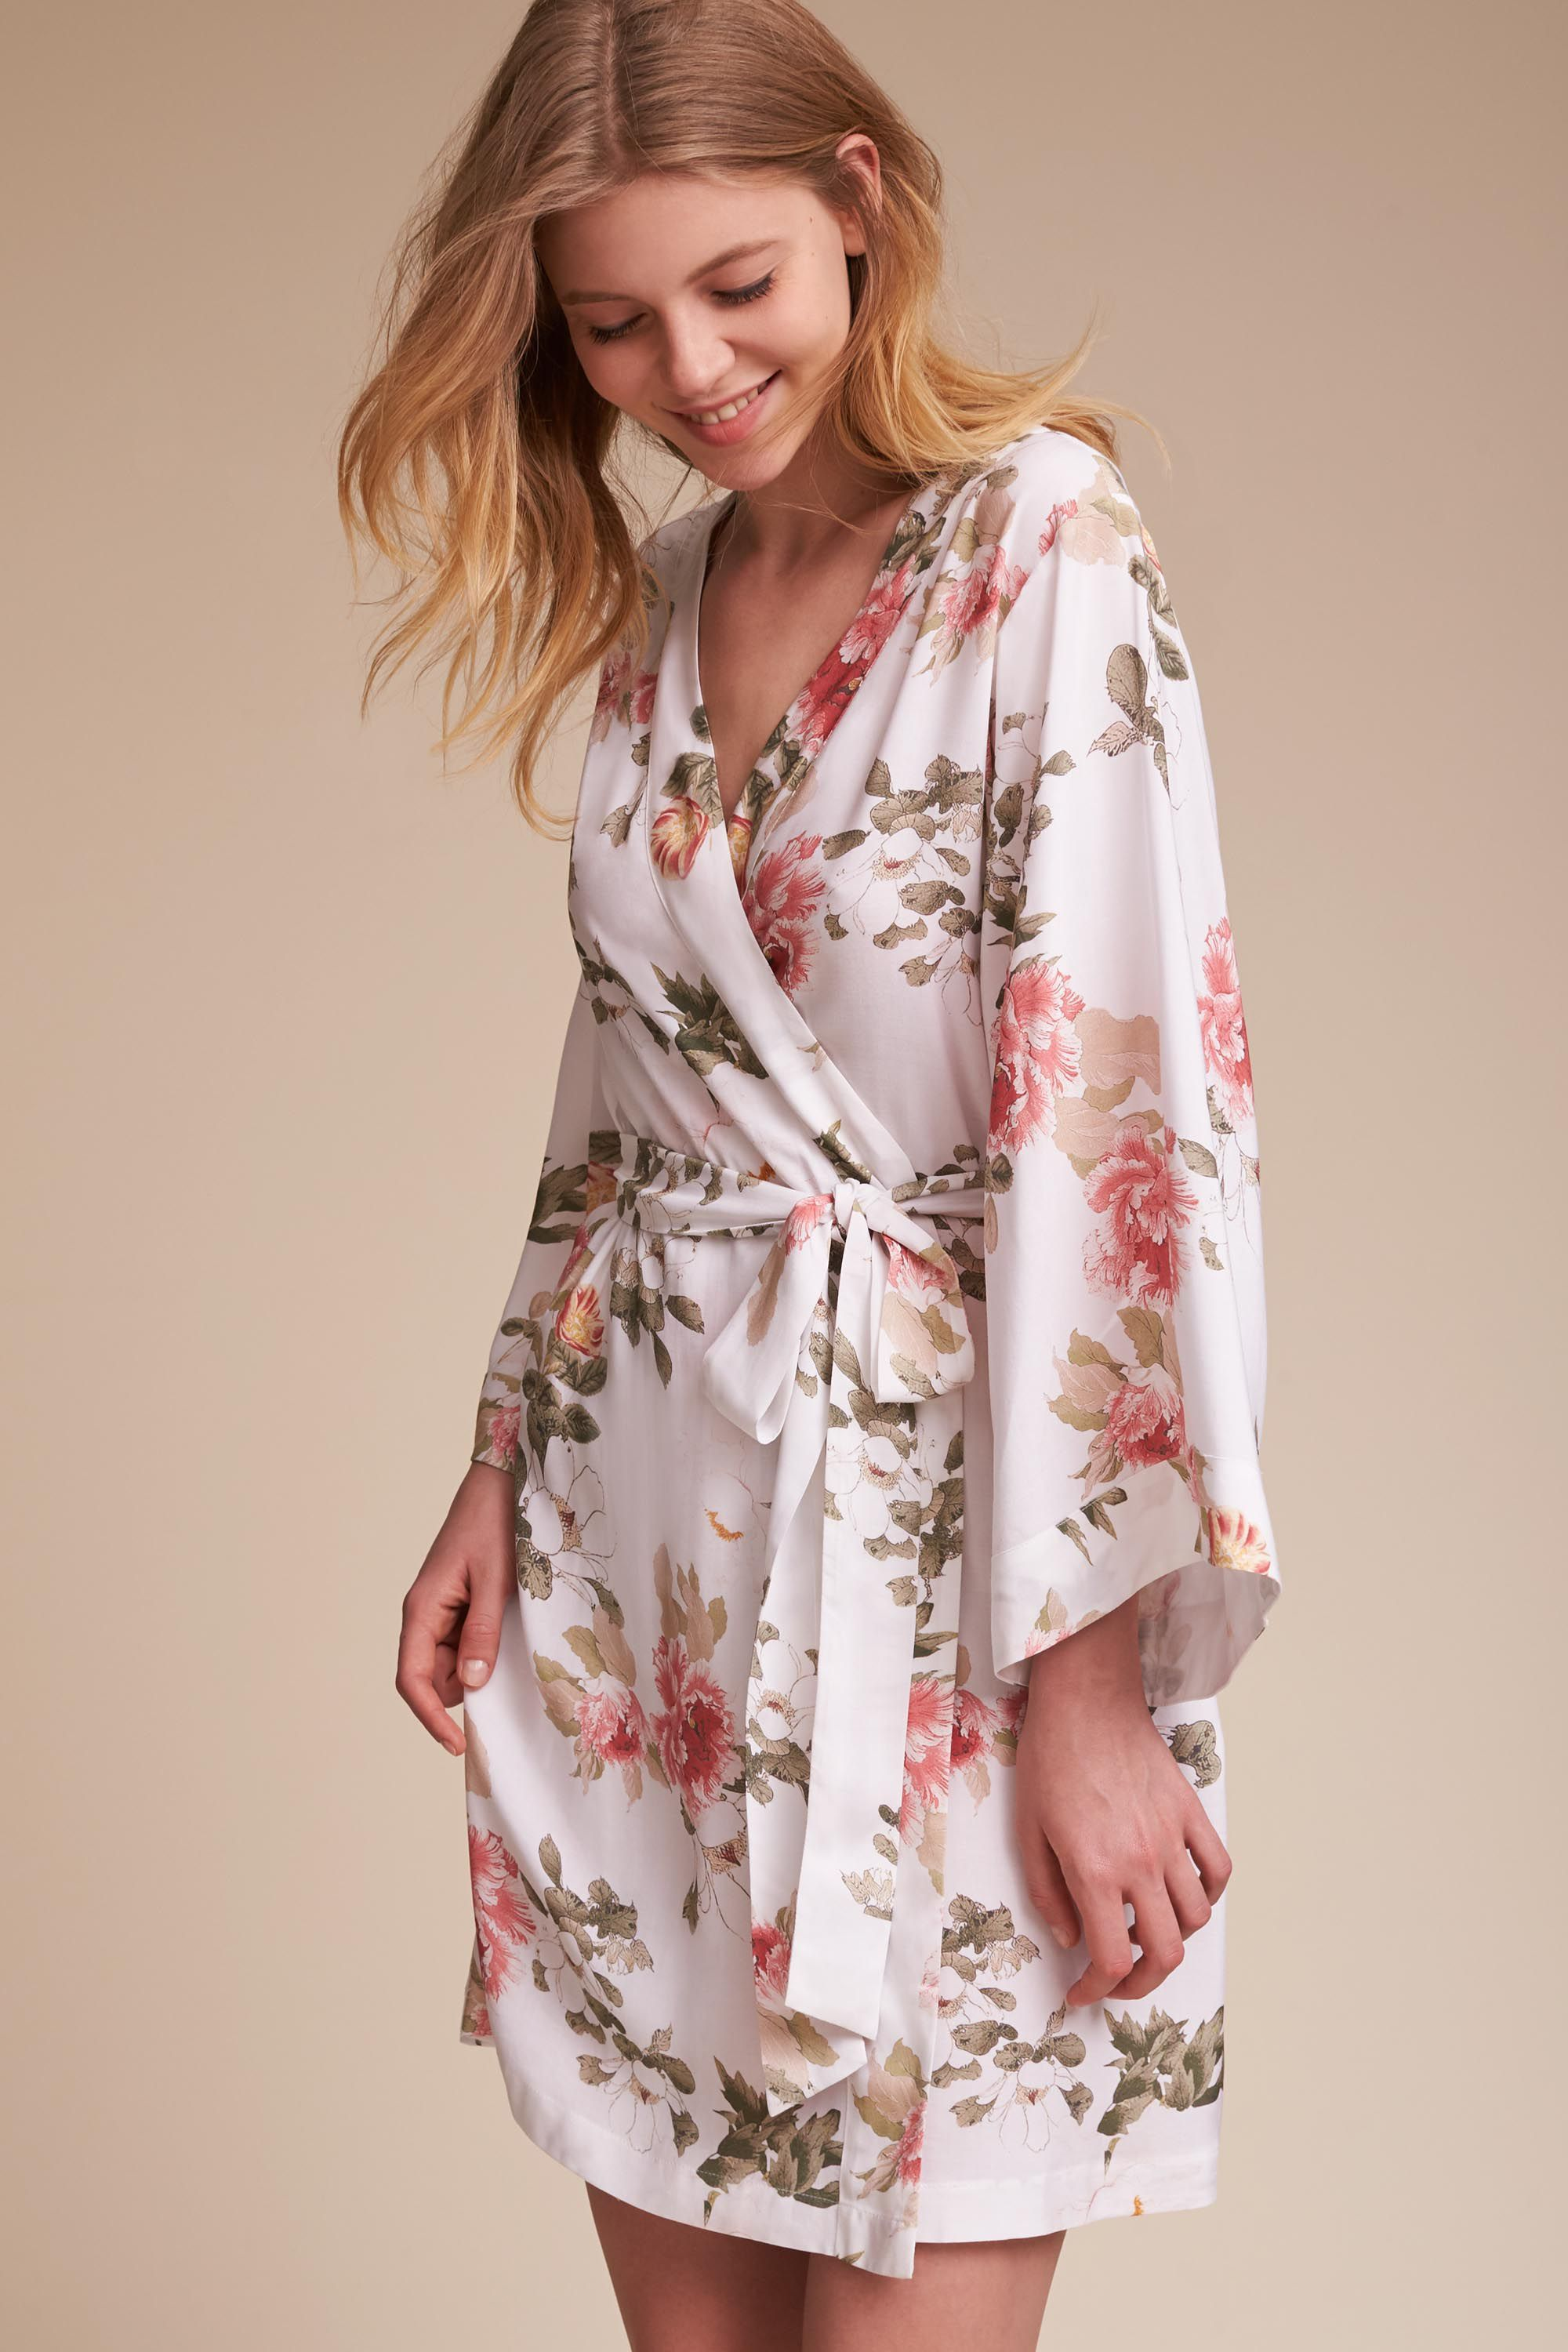 Yumi Kim Morning Light Floral Robe from I can wear white while the others  wear the different colors )